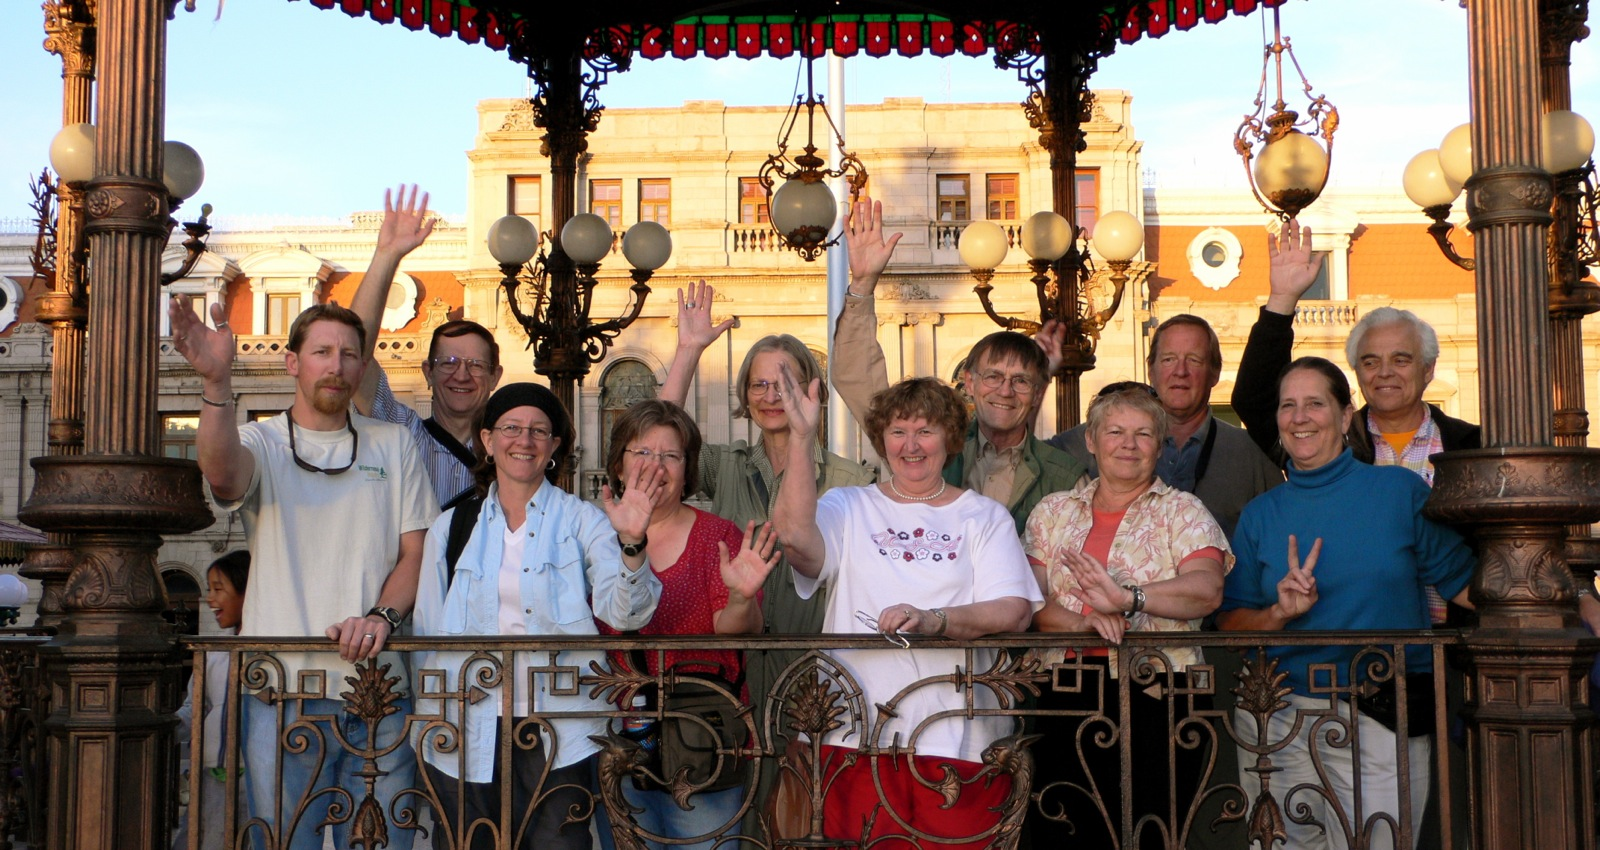 The Wilderness Inquiry group waves from an ornate pavilion in the plaza of Chihuahua Mexico.